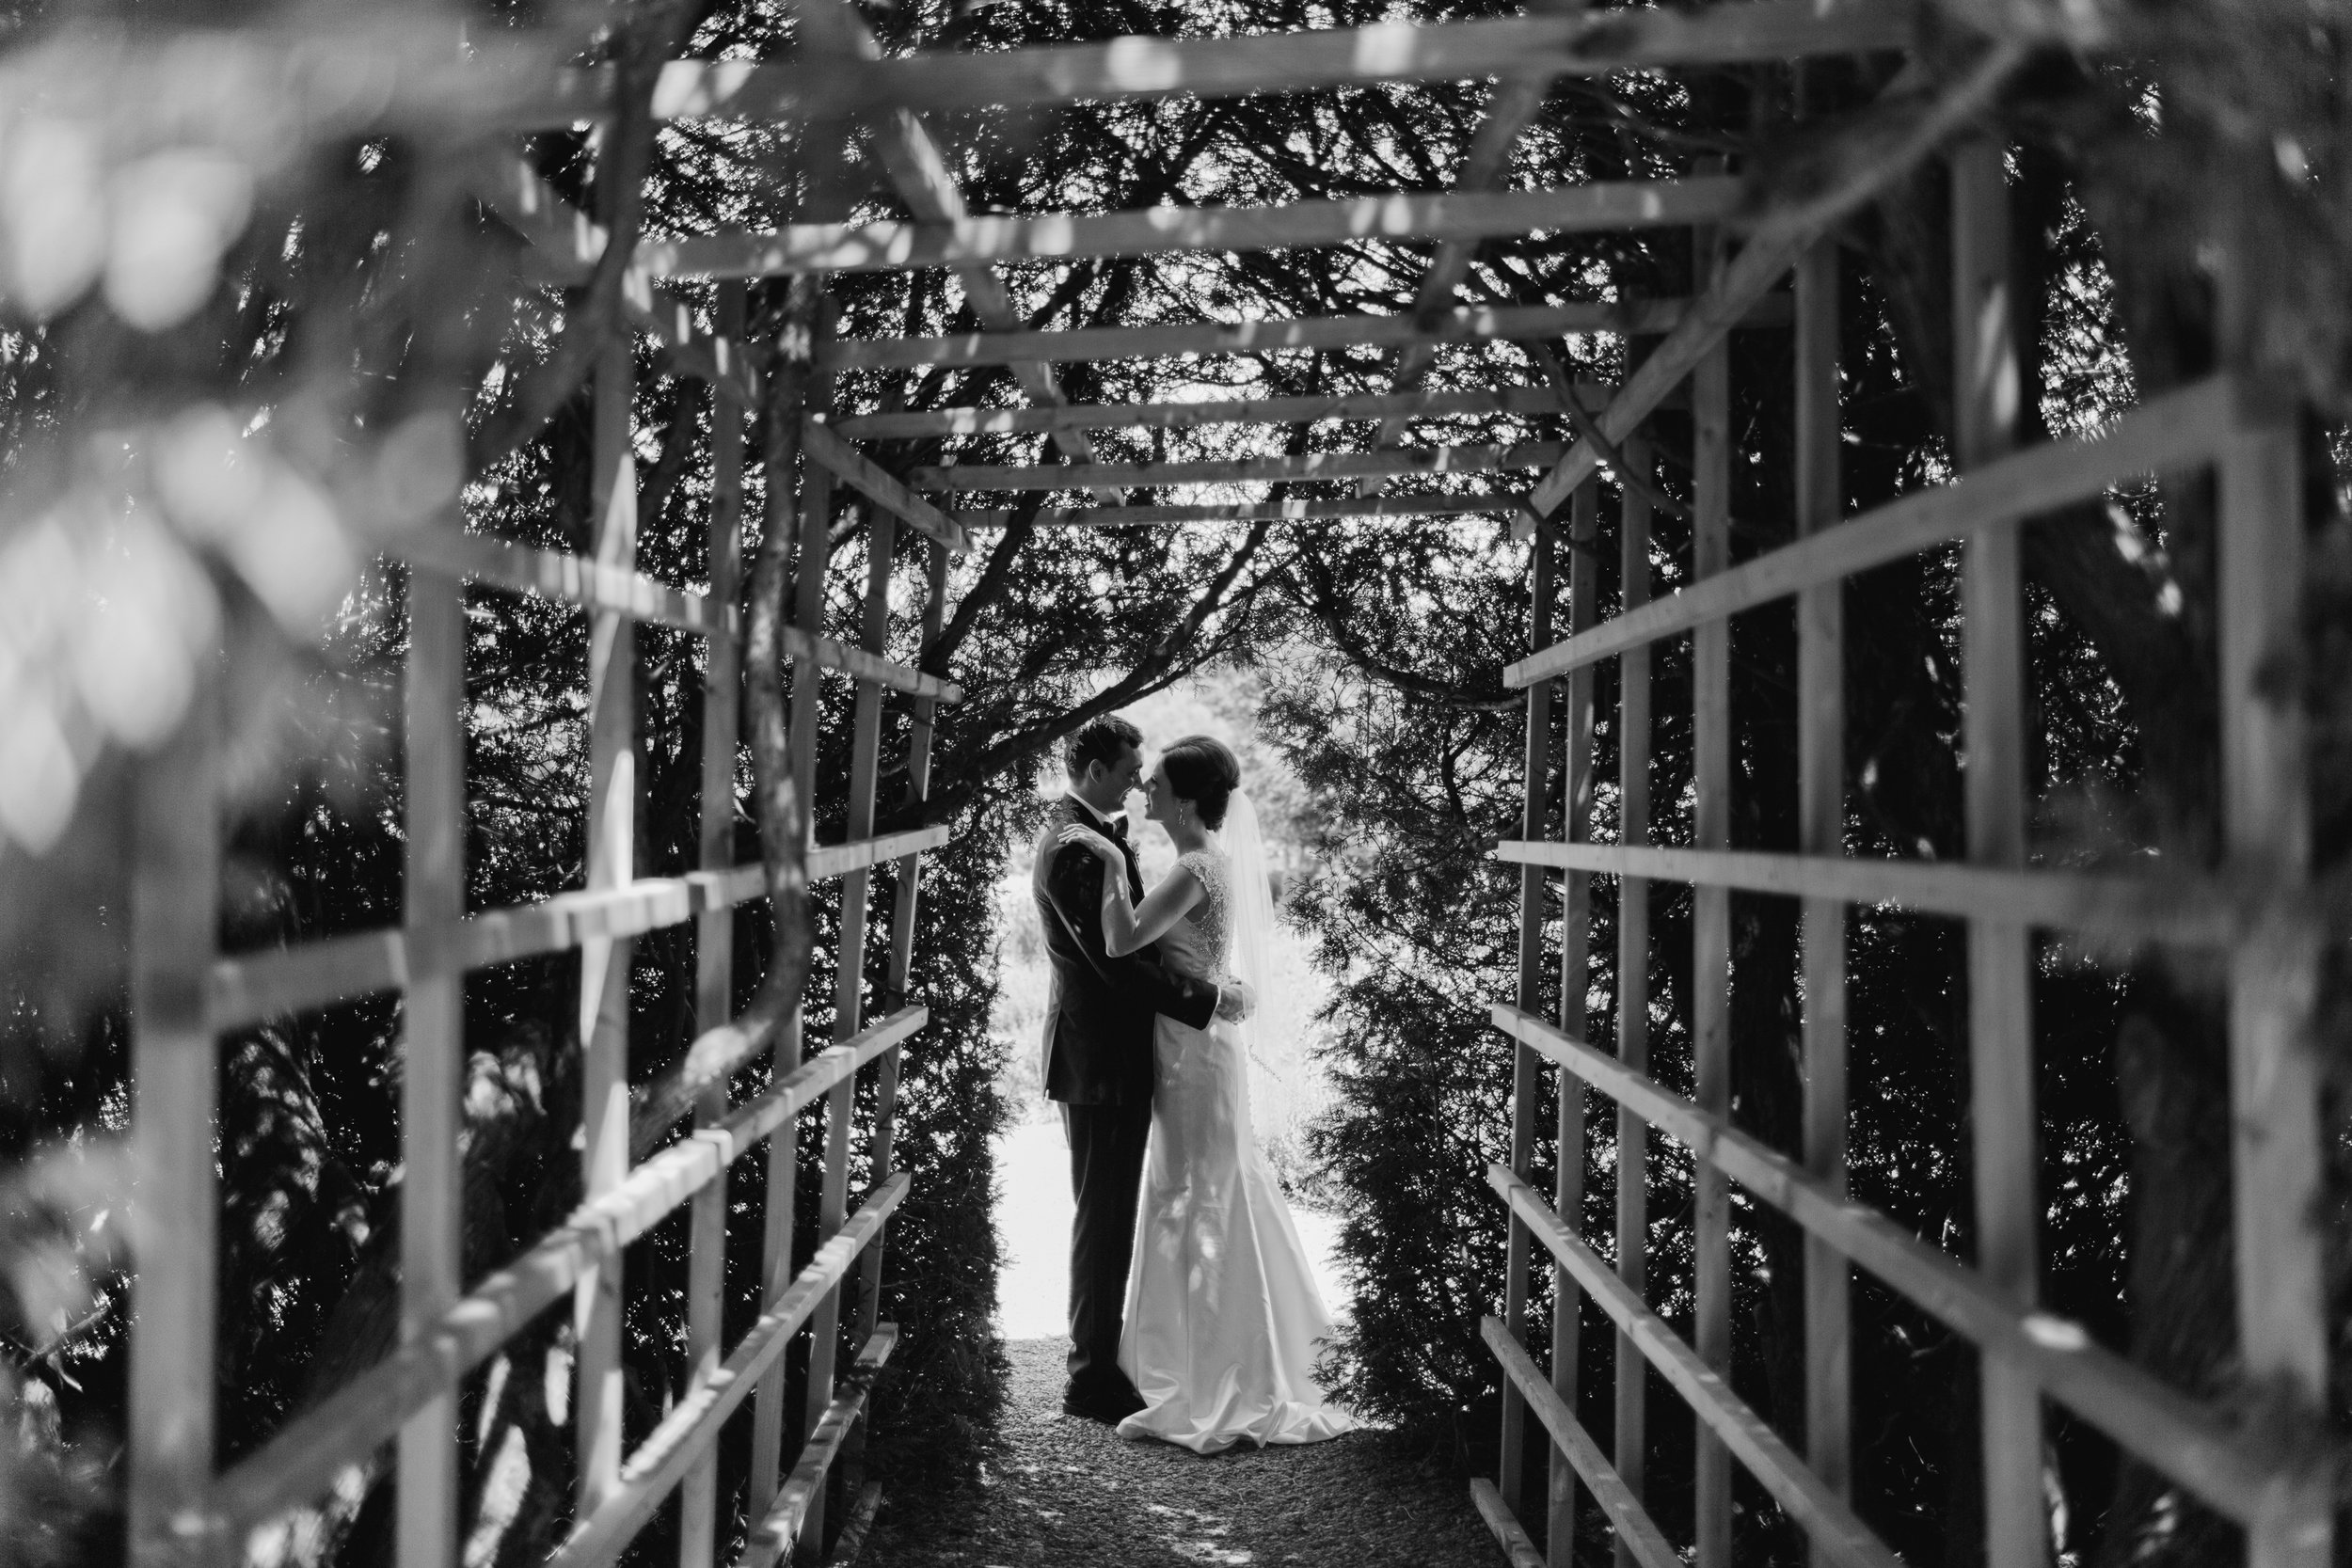 moncton_wedding_photographer_caro_photo-54.jpg